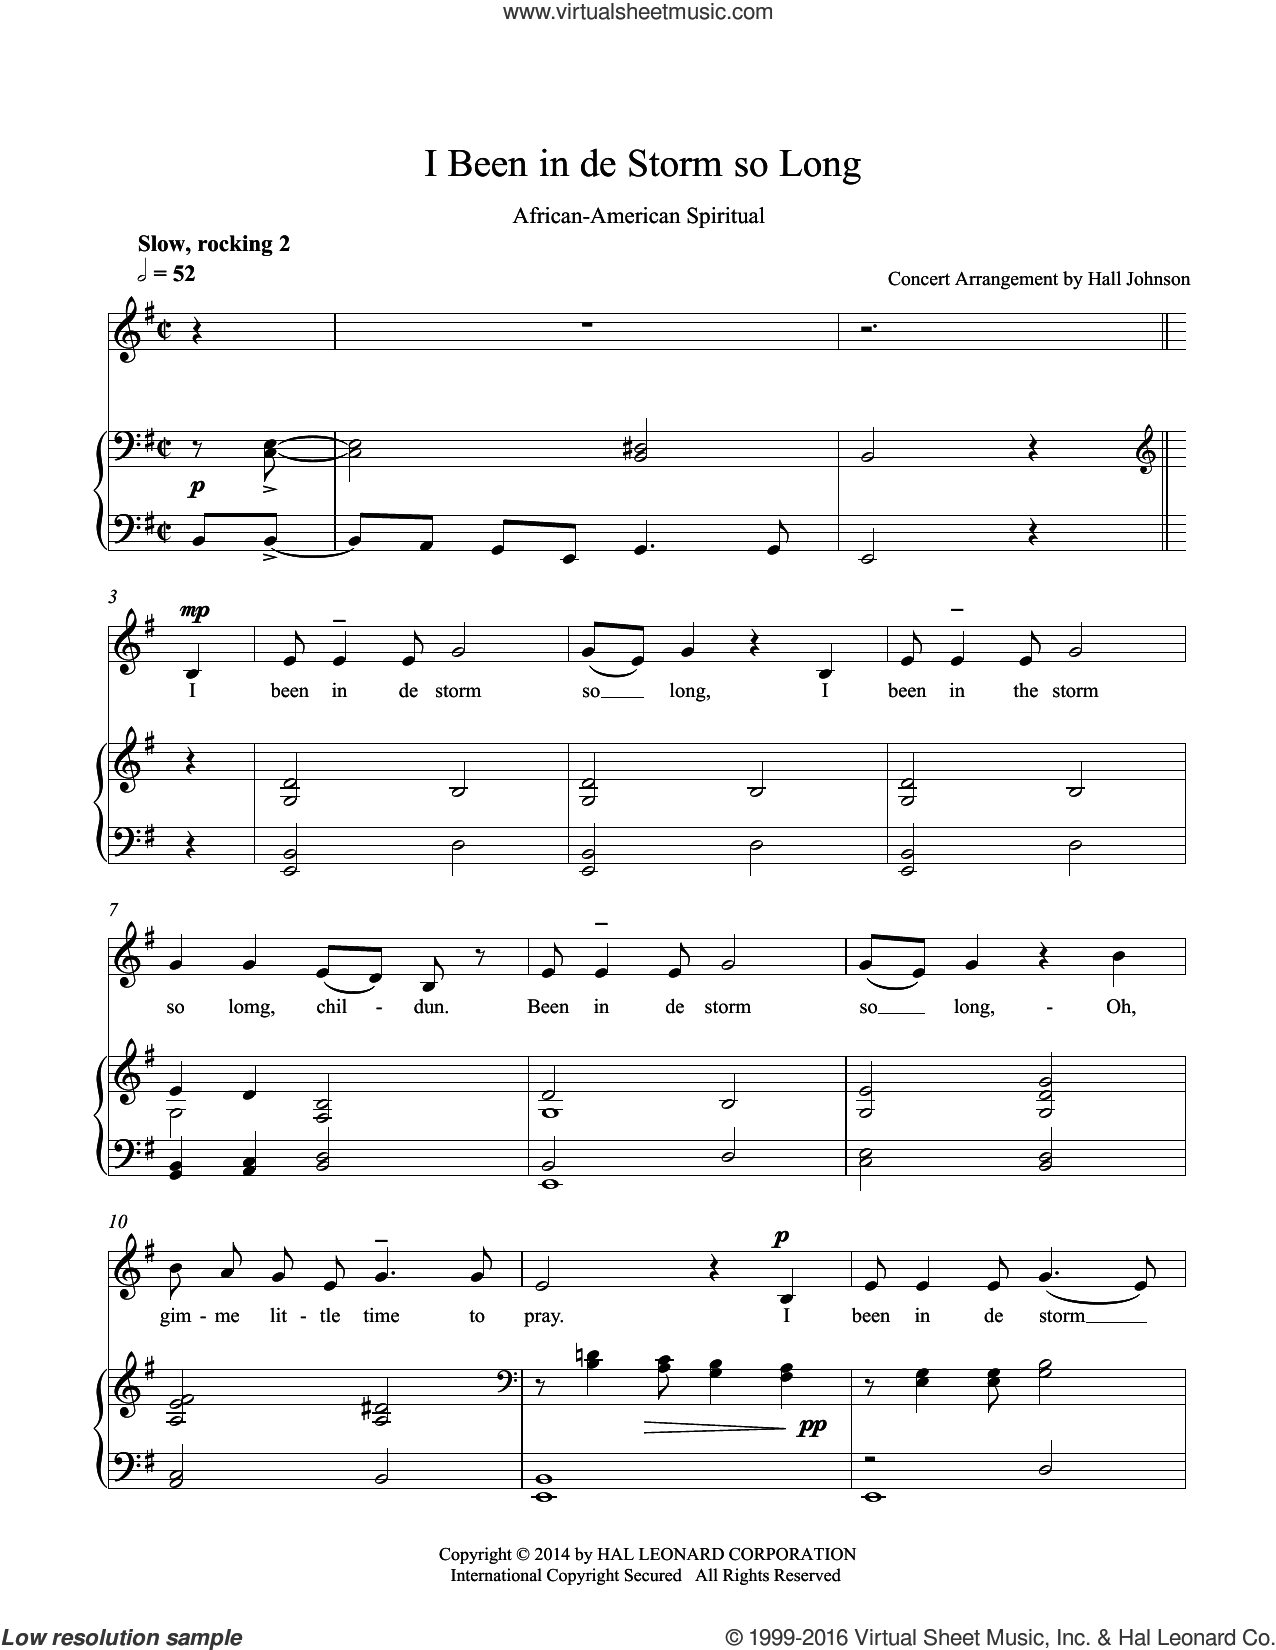 I Been in de Storm So Long (E minor) sheet music for voice and piano by Hall Johnson, classical score, intermediate skill level